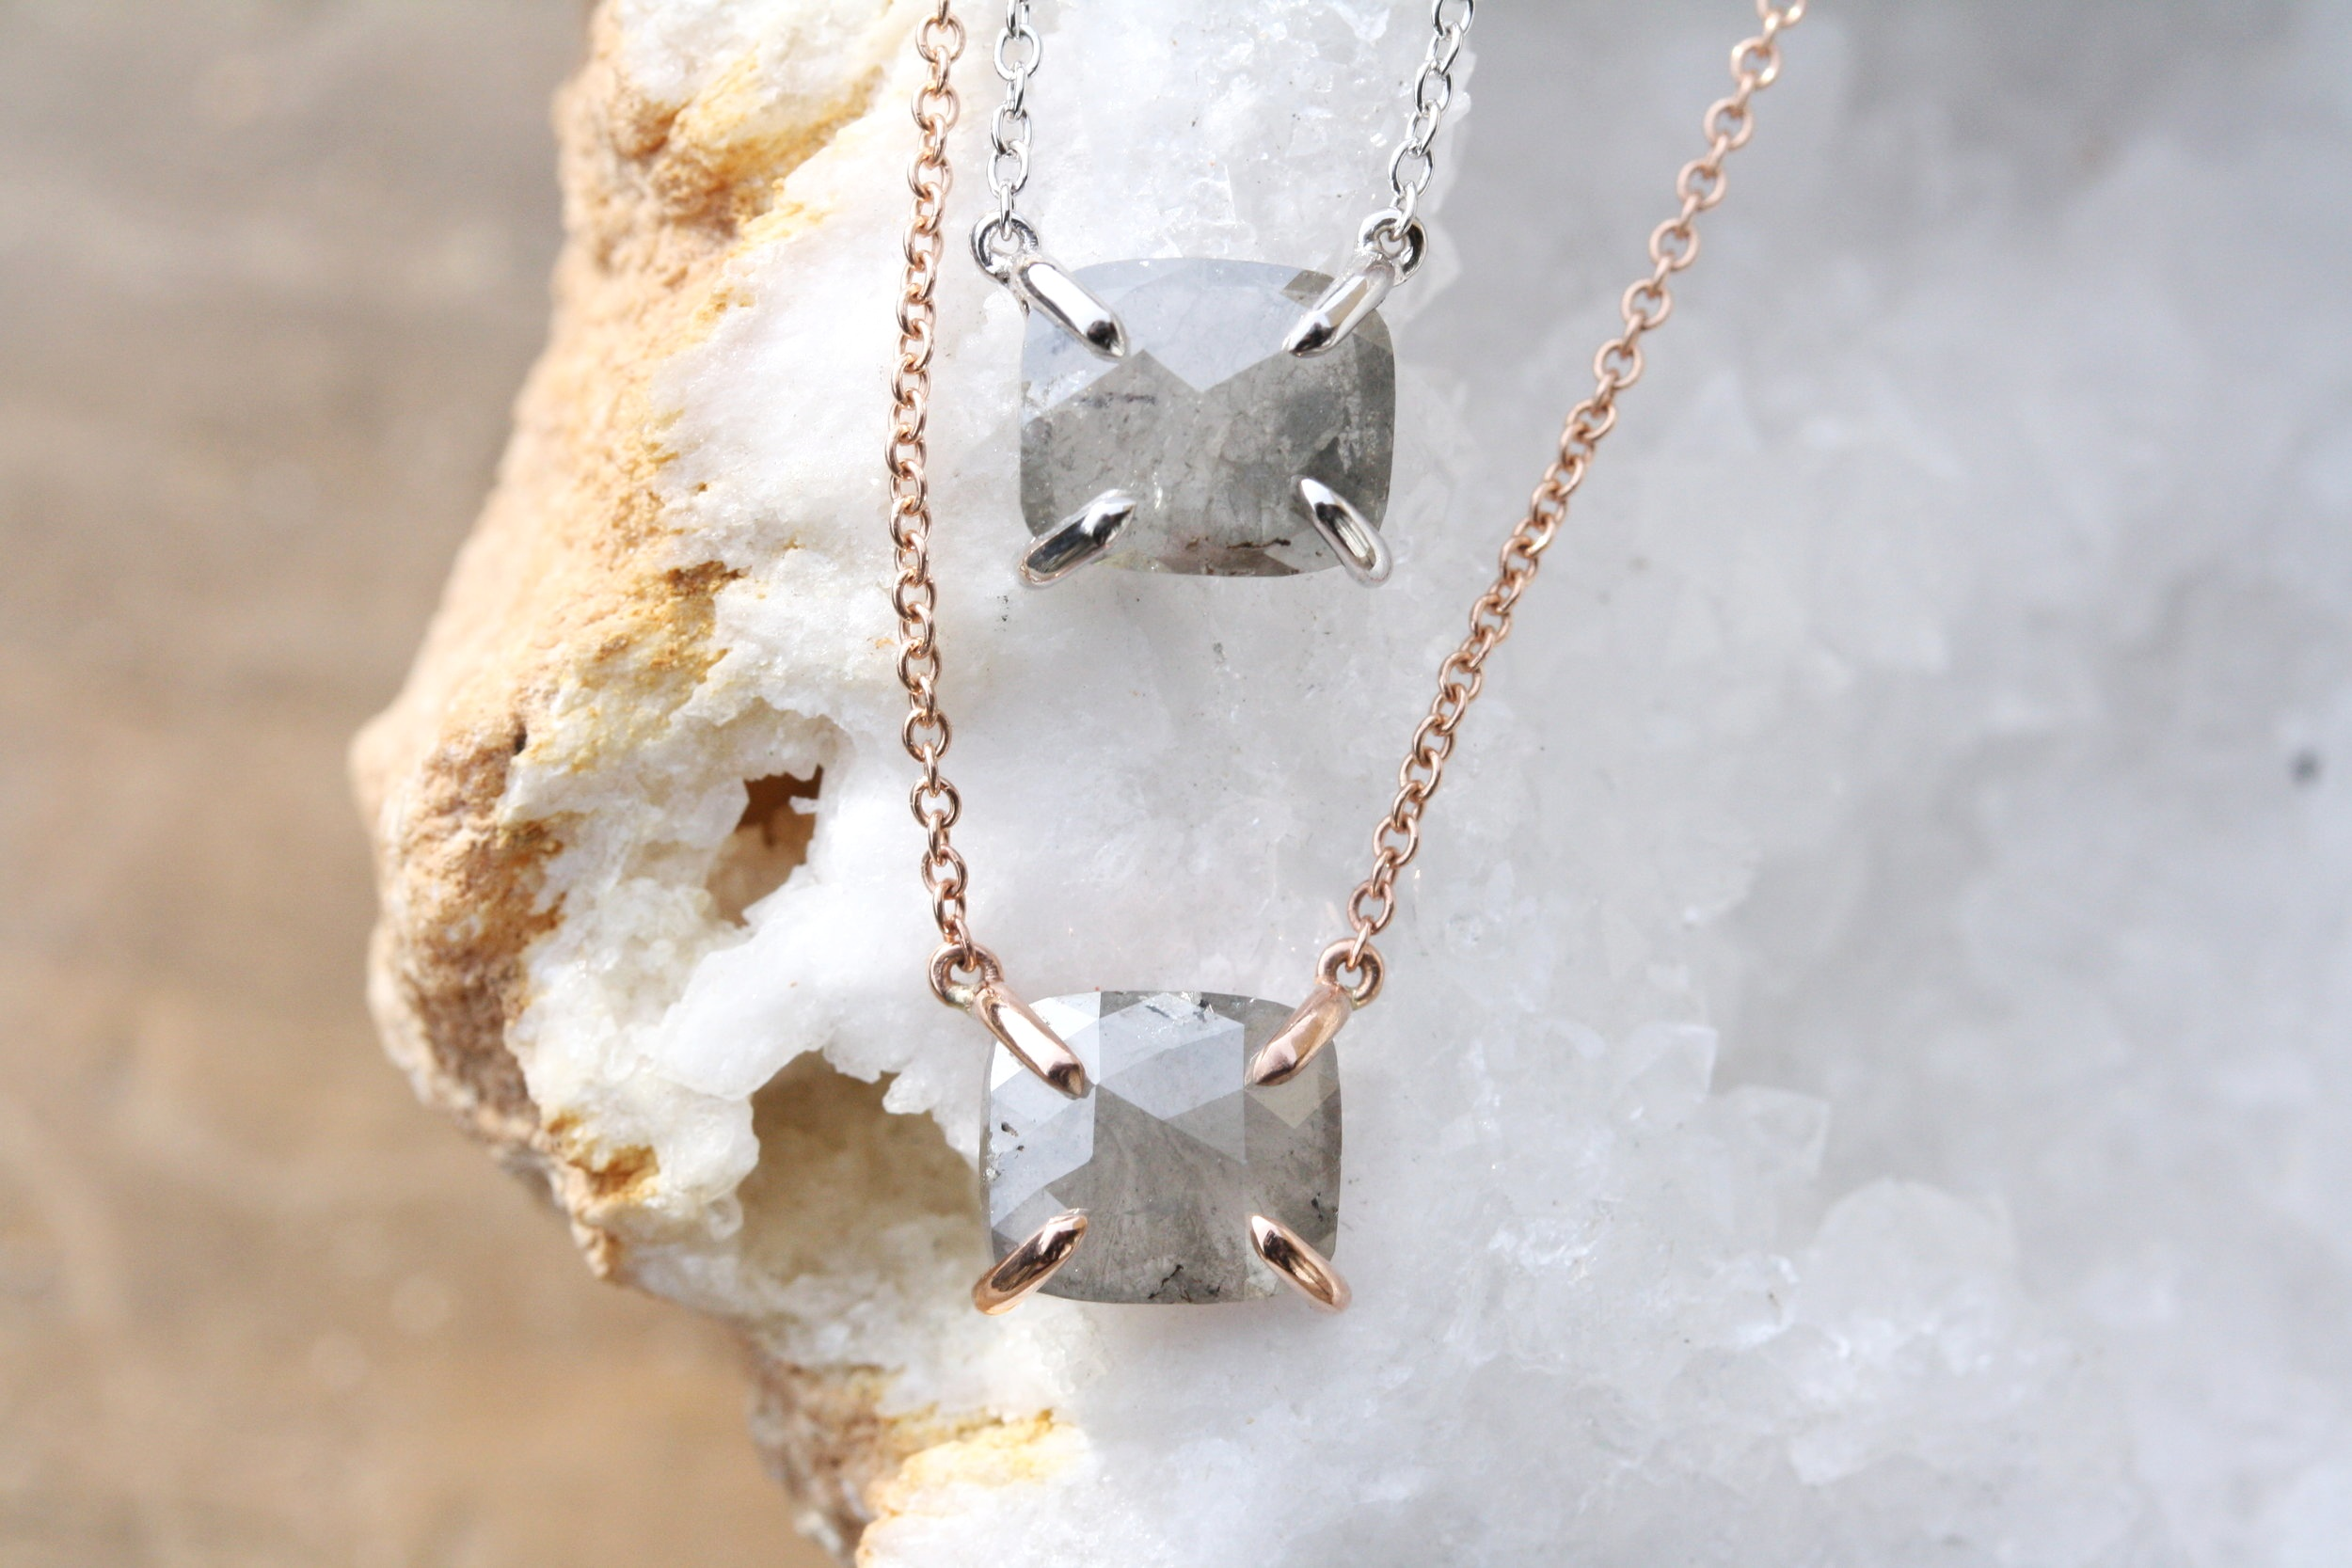 EW Rectangular Gray Diamond Adjustable Necklaces Group Shots_01.JPG